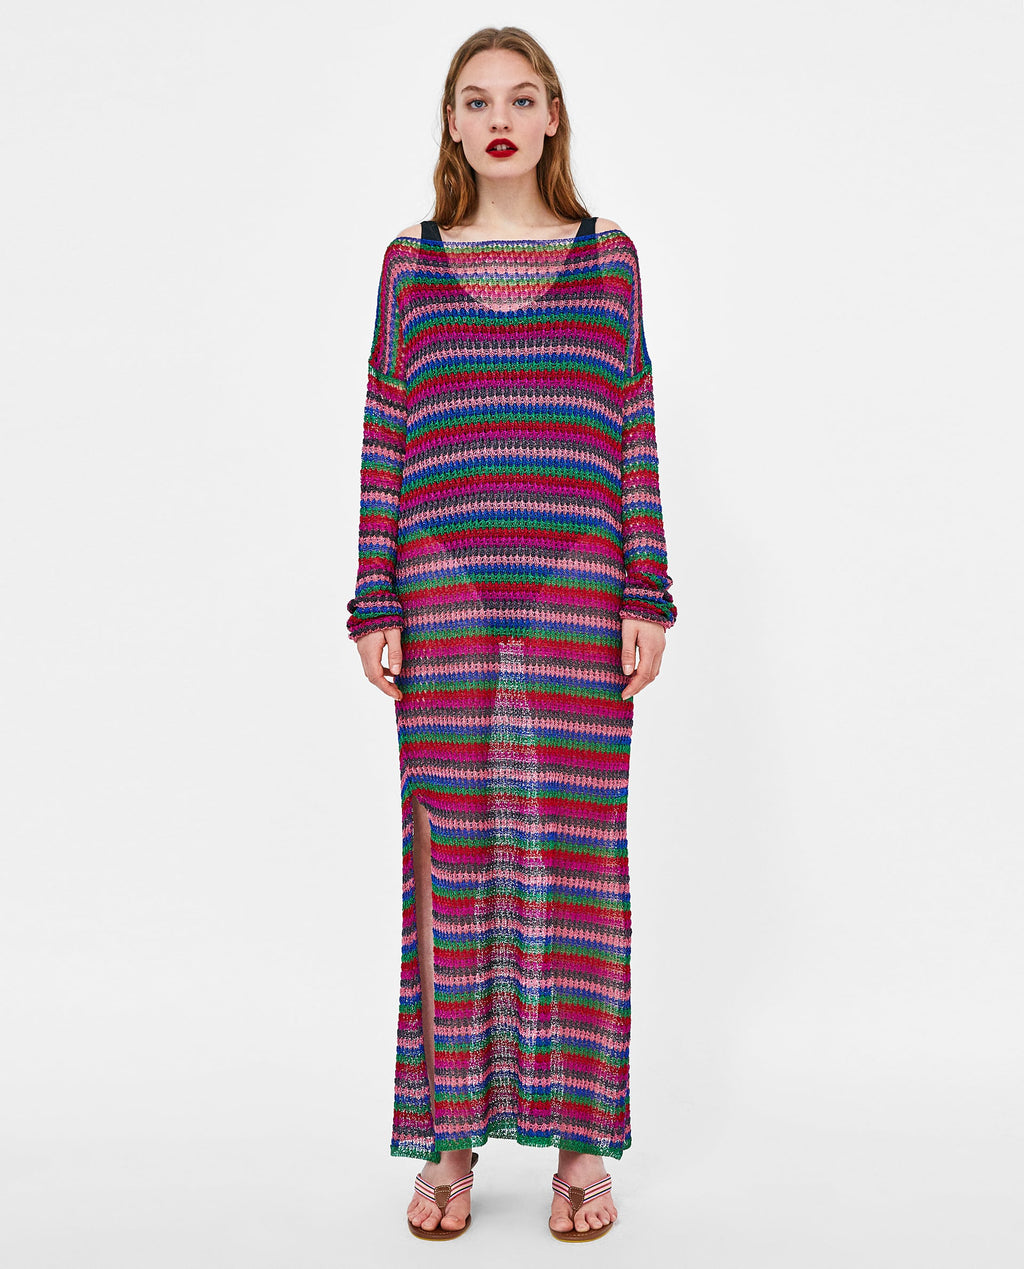 Zara Knit Multi-Color Maxi Cover-Up Dress Size S